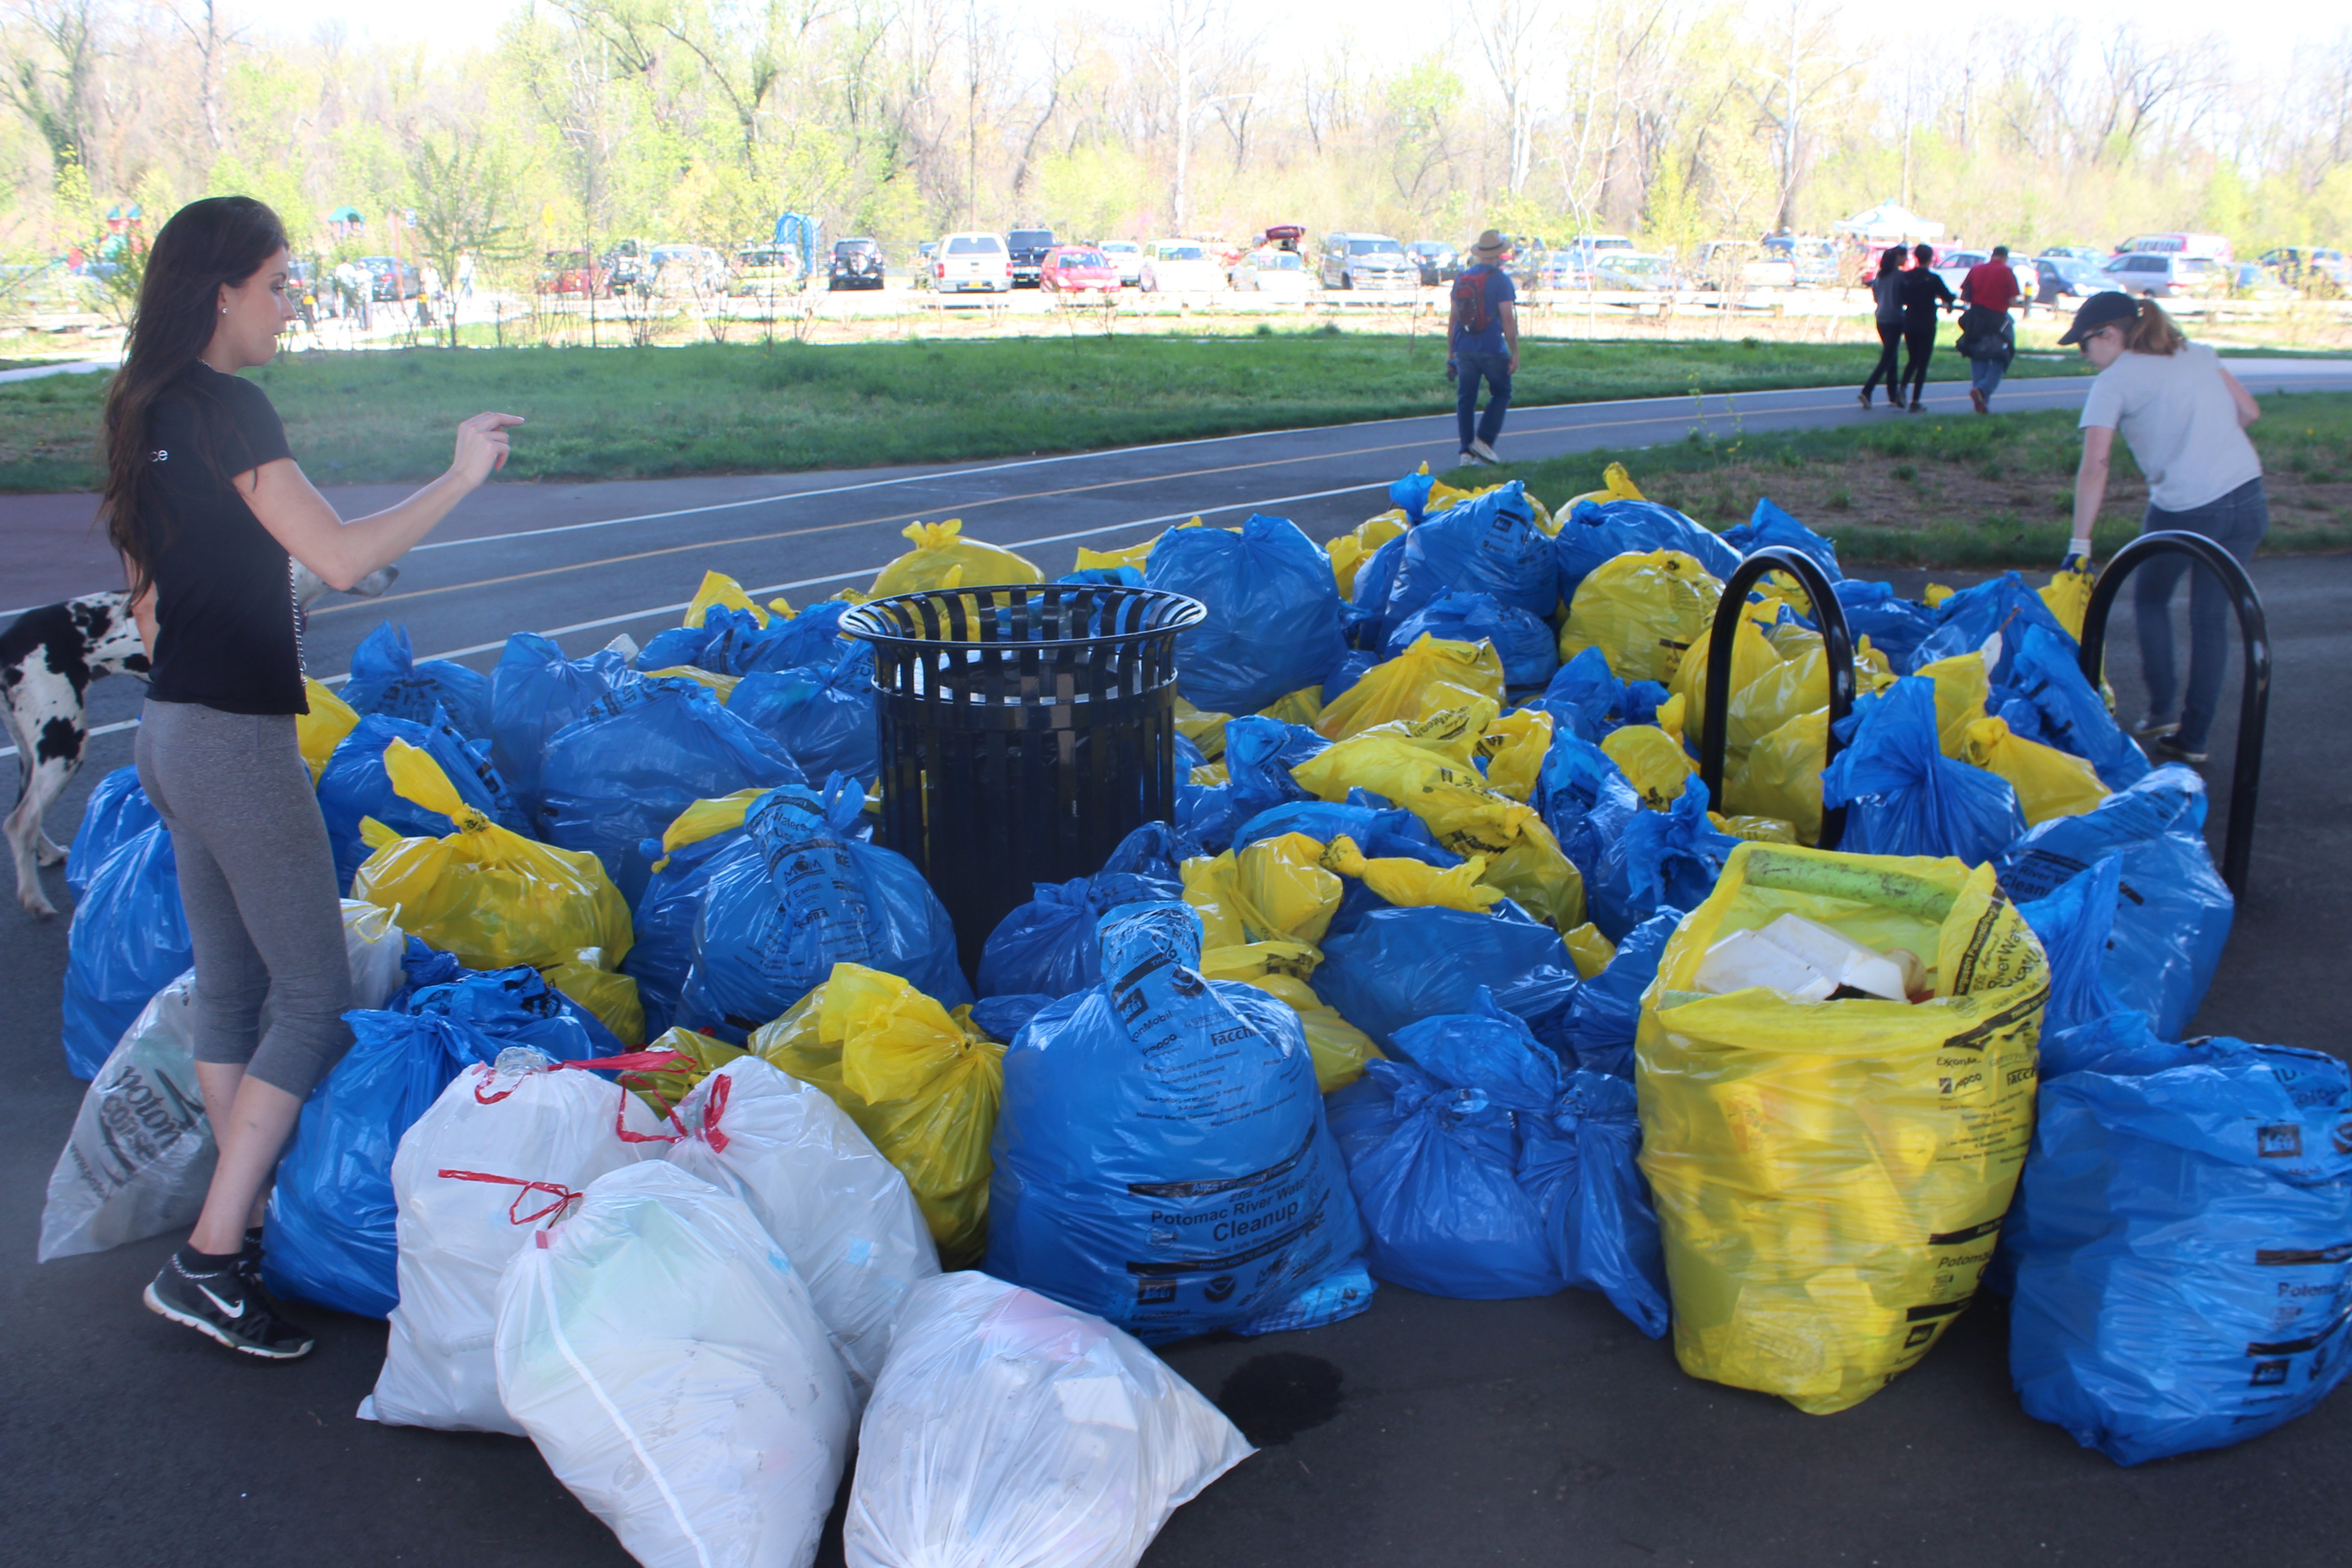 Over 160 Garbage Bags of Trash and Recyclables Collected!